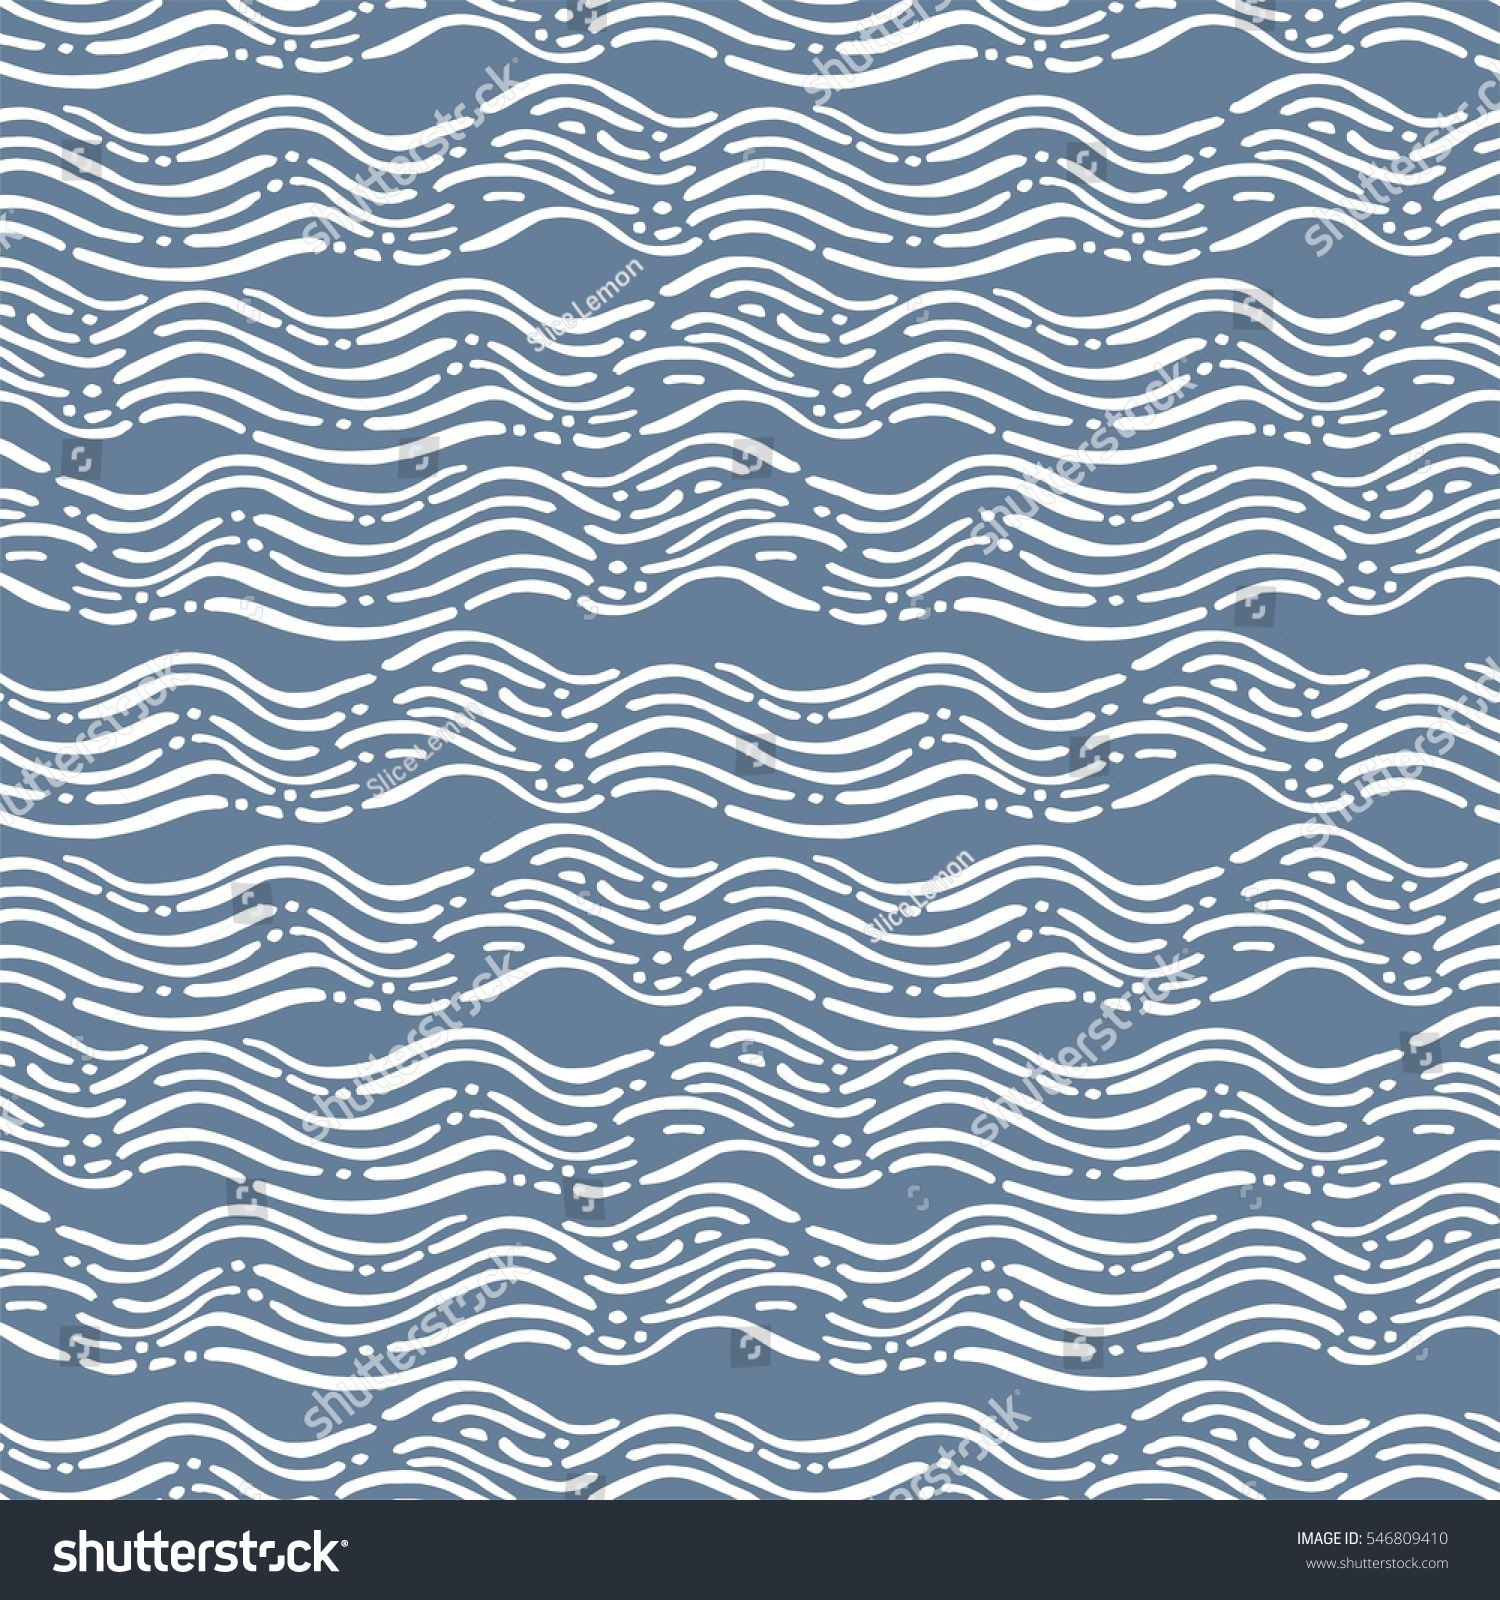 Seamless River Water Texture